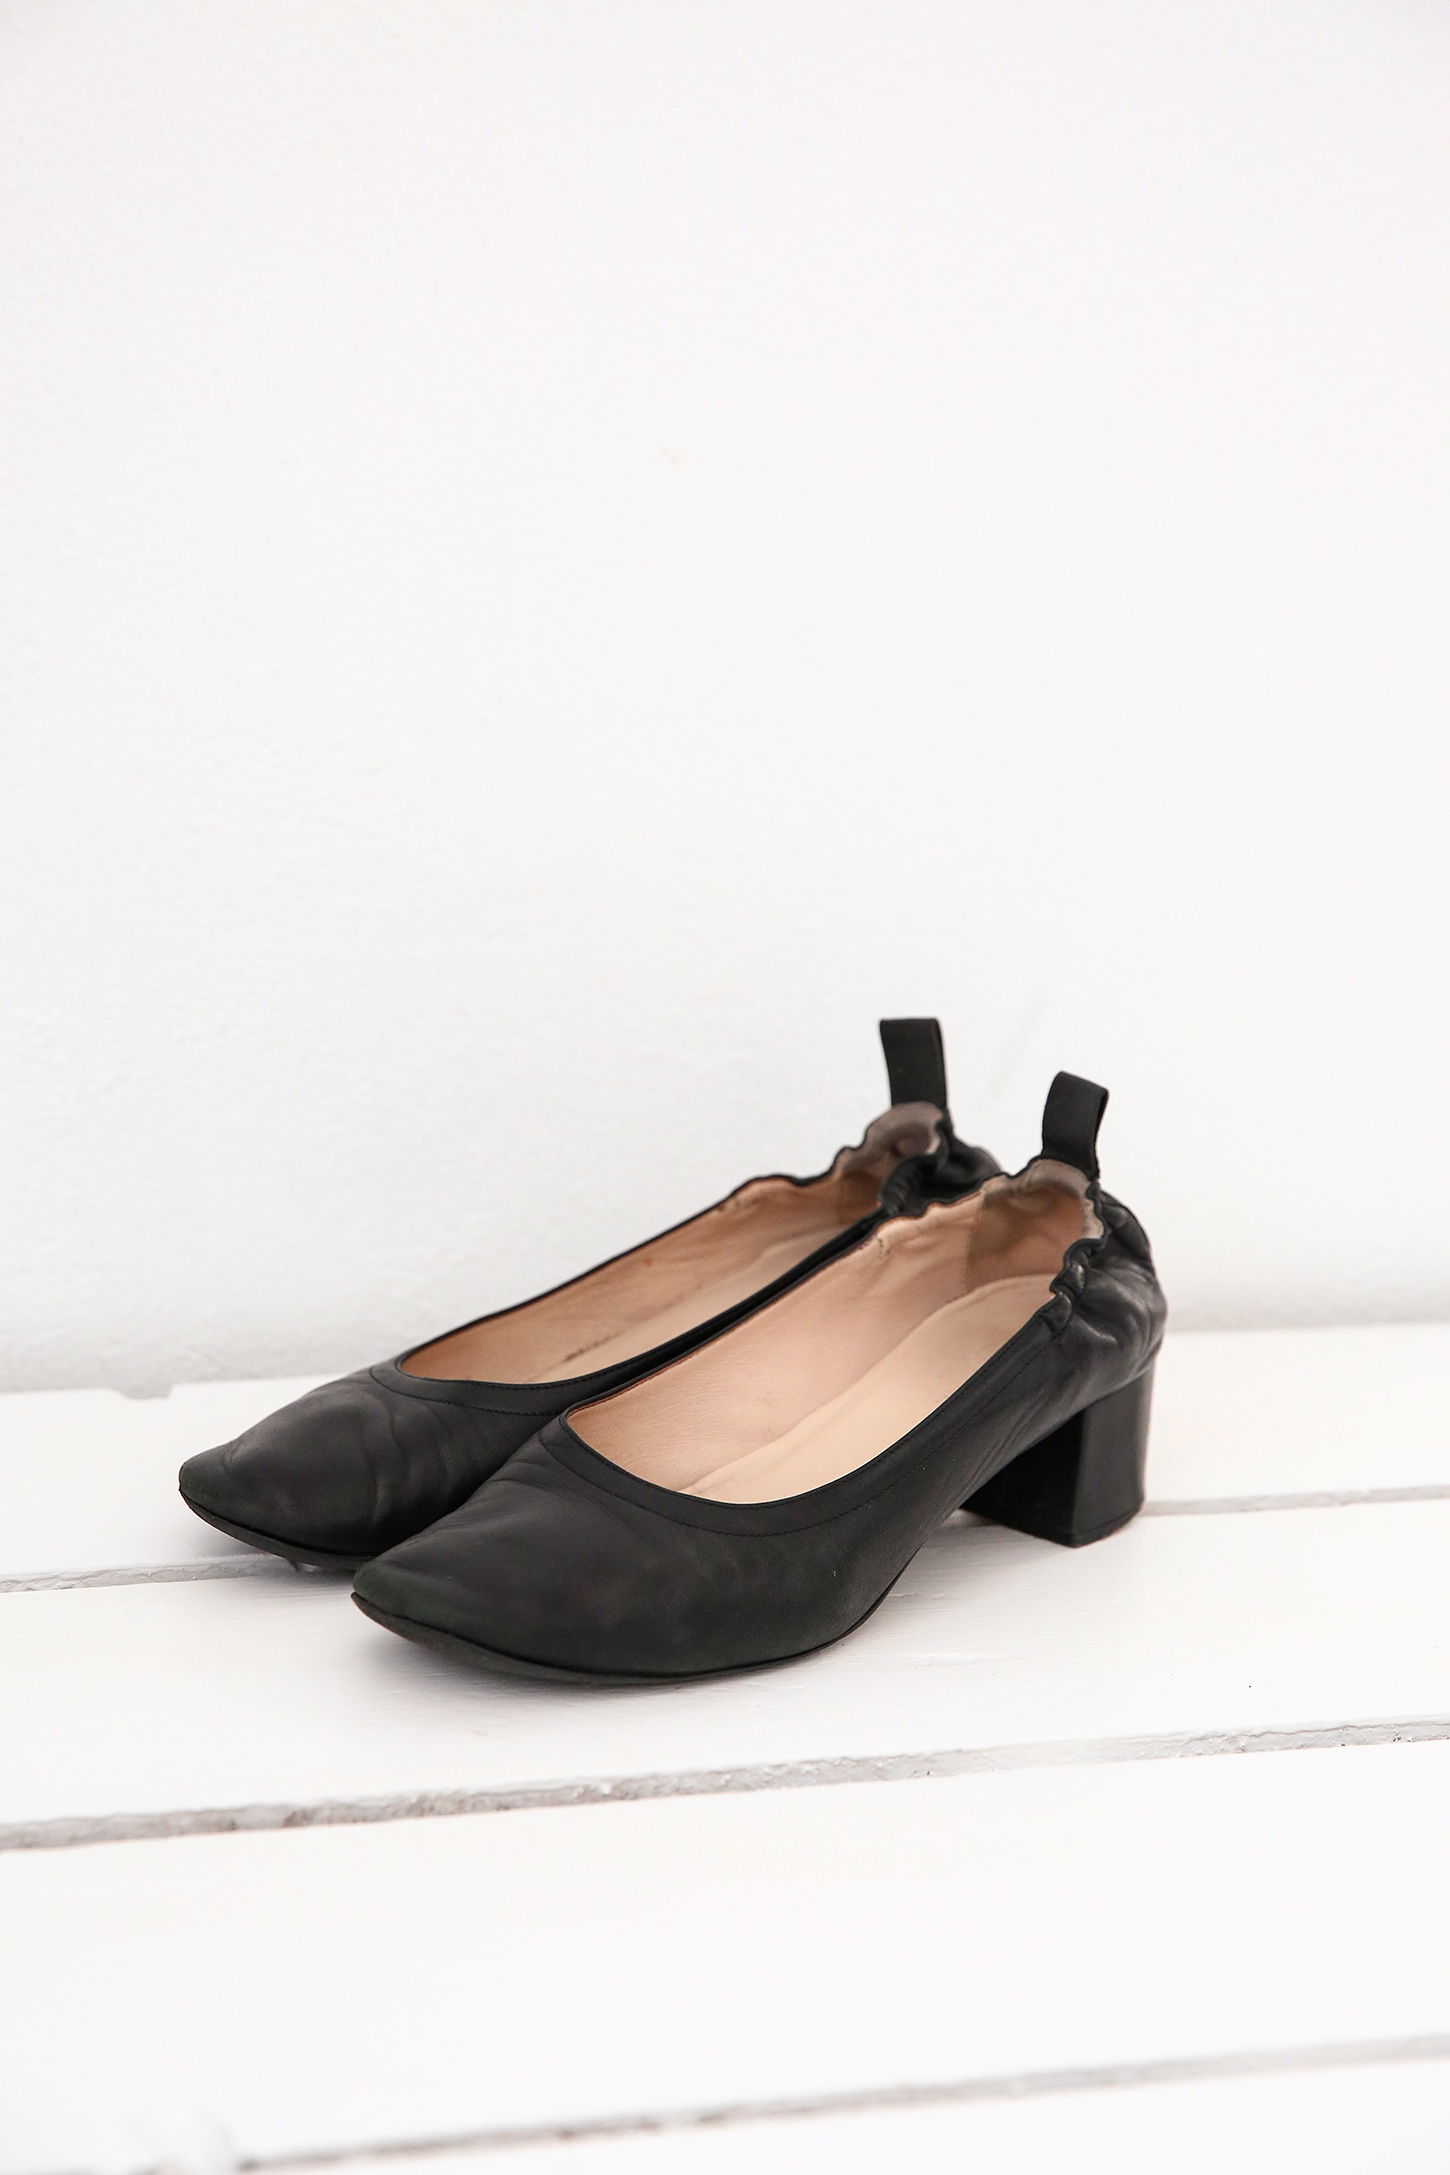 3e455742d14 Updated Everlane Day Heel Review after more than 12 months of wear